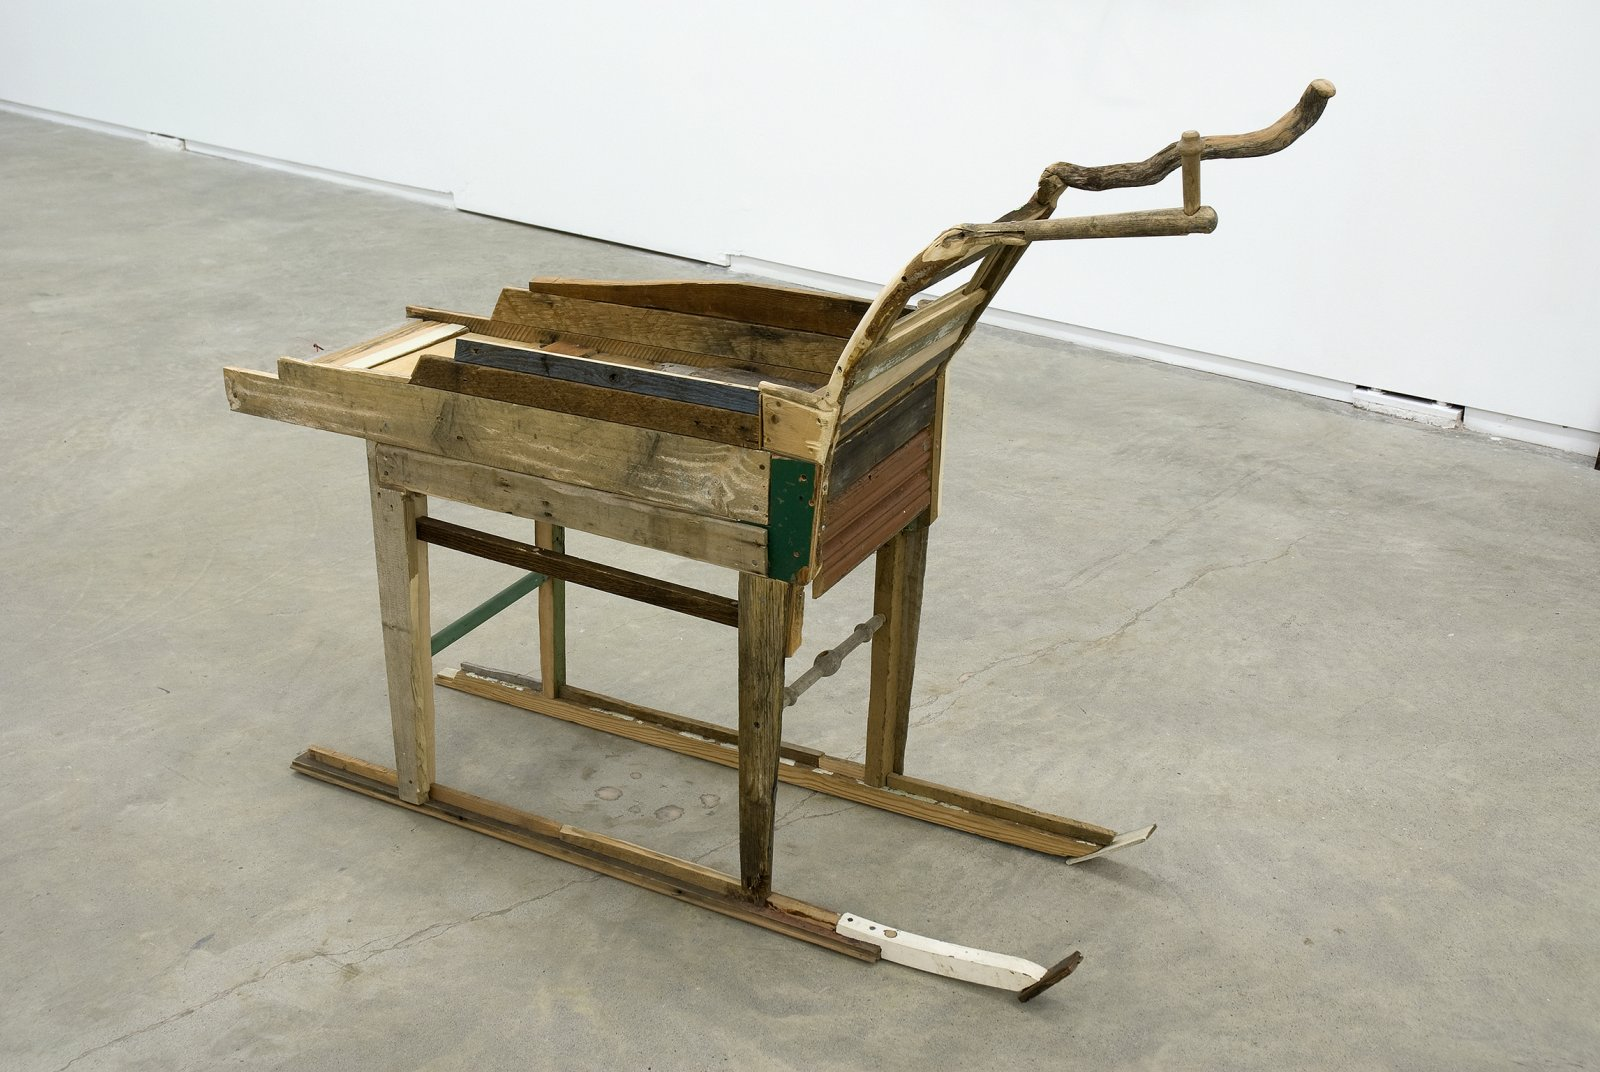 Gareth Moore, Donkey, Sculpture as Companion (With Device to Stop Braying) (from Uncertain Pilgrimage), 2006–2009, found wood, nails, screws, twine, stone, 47 x 56 x 18 in. (119 x 142 x 46 cm) by Gareth Moore